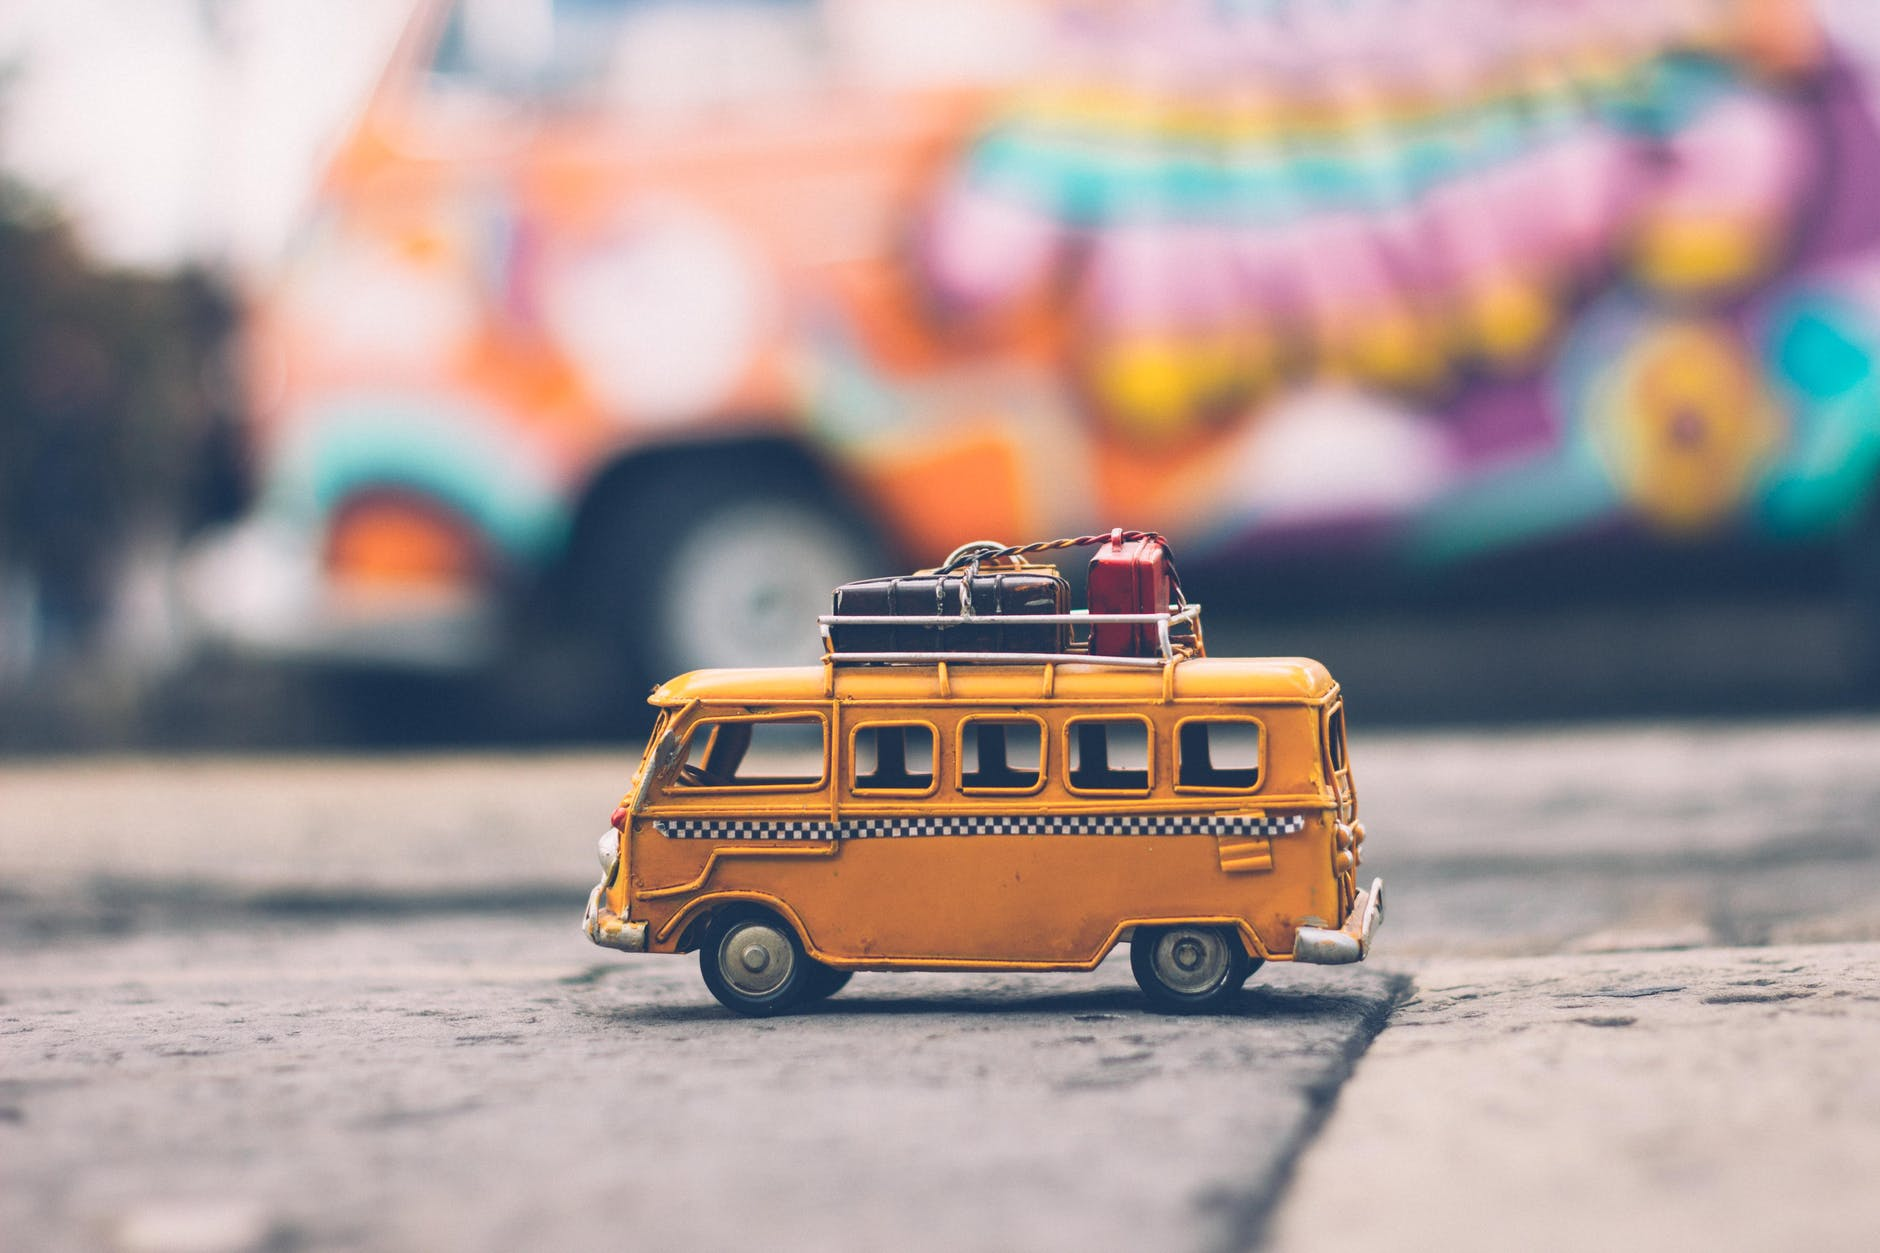 a toy yellow camper van with luggage on the roof rack.